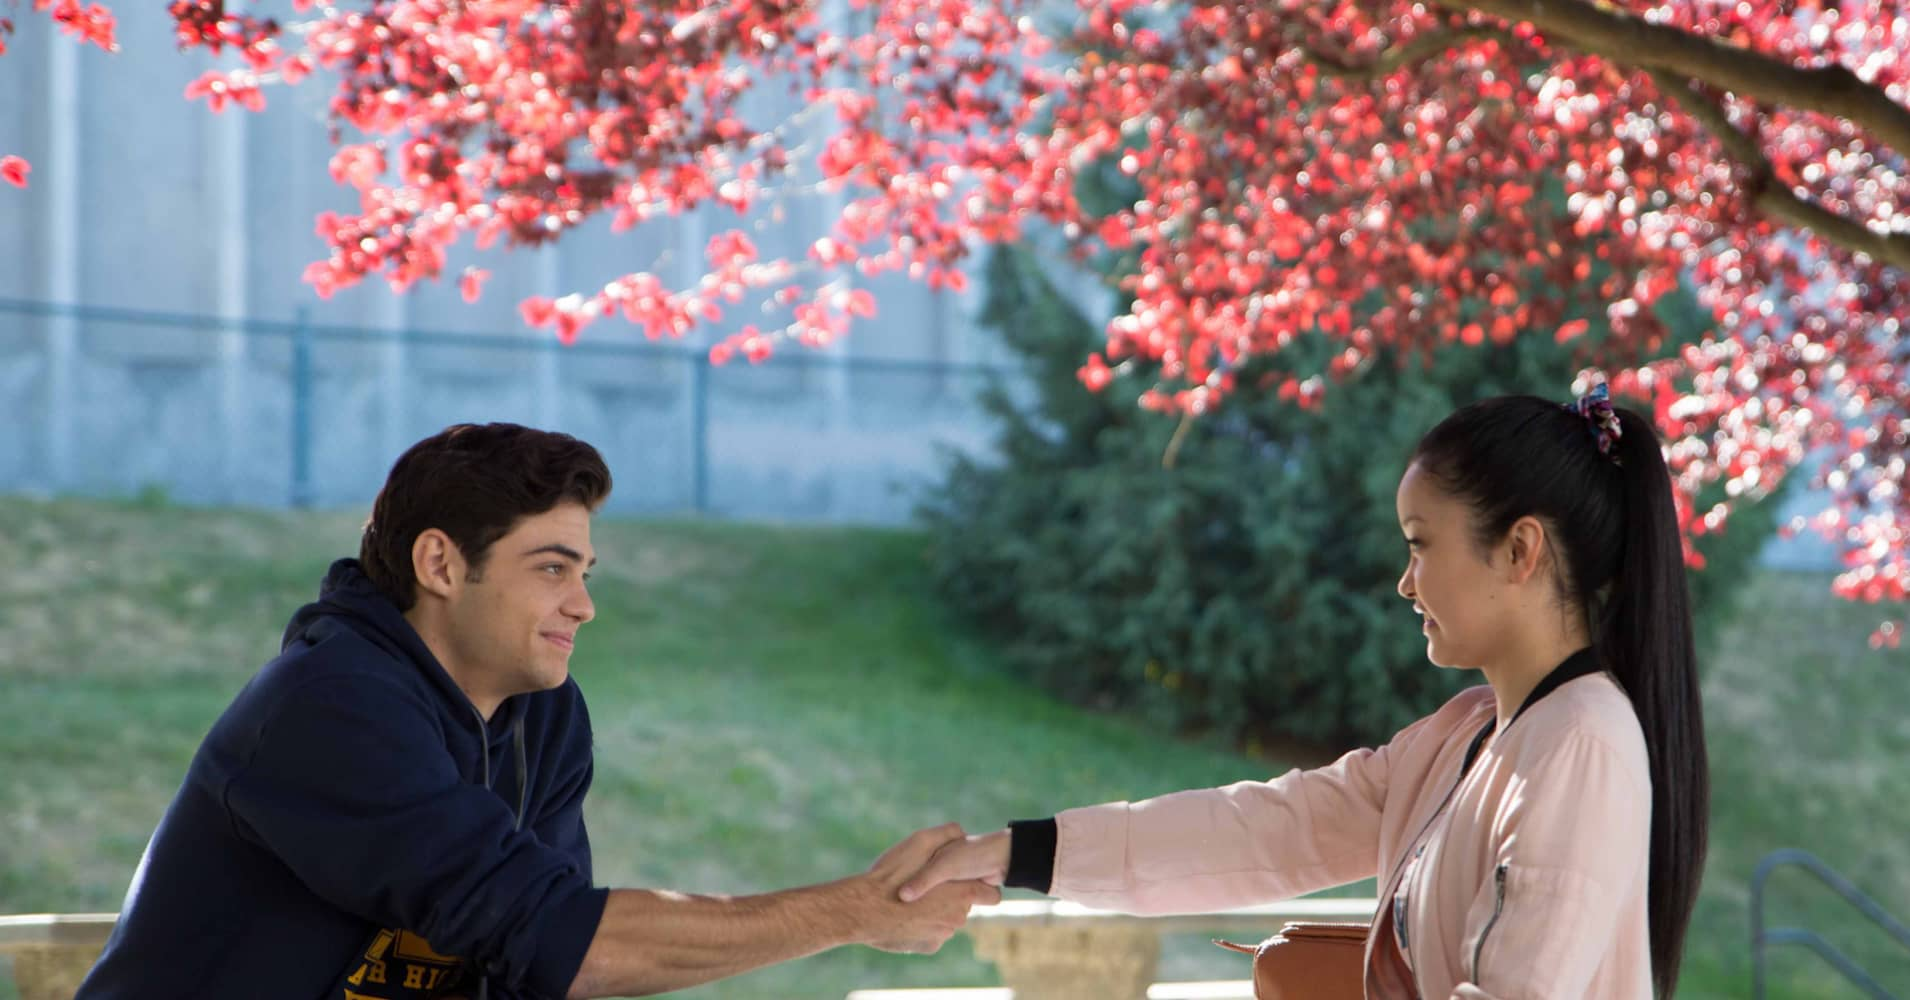 Here's what Lana Condor and Noah Centineo learned from each other while filming 'To All the Boys I've Loved Before'